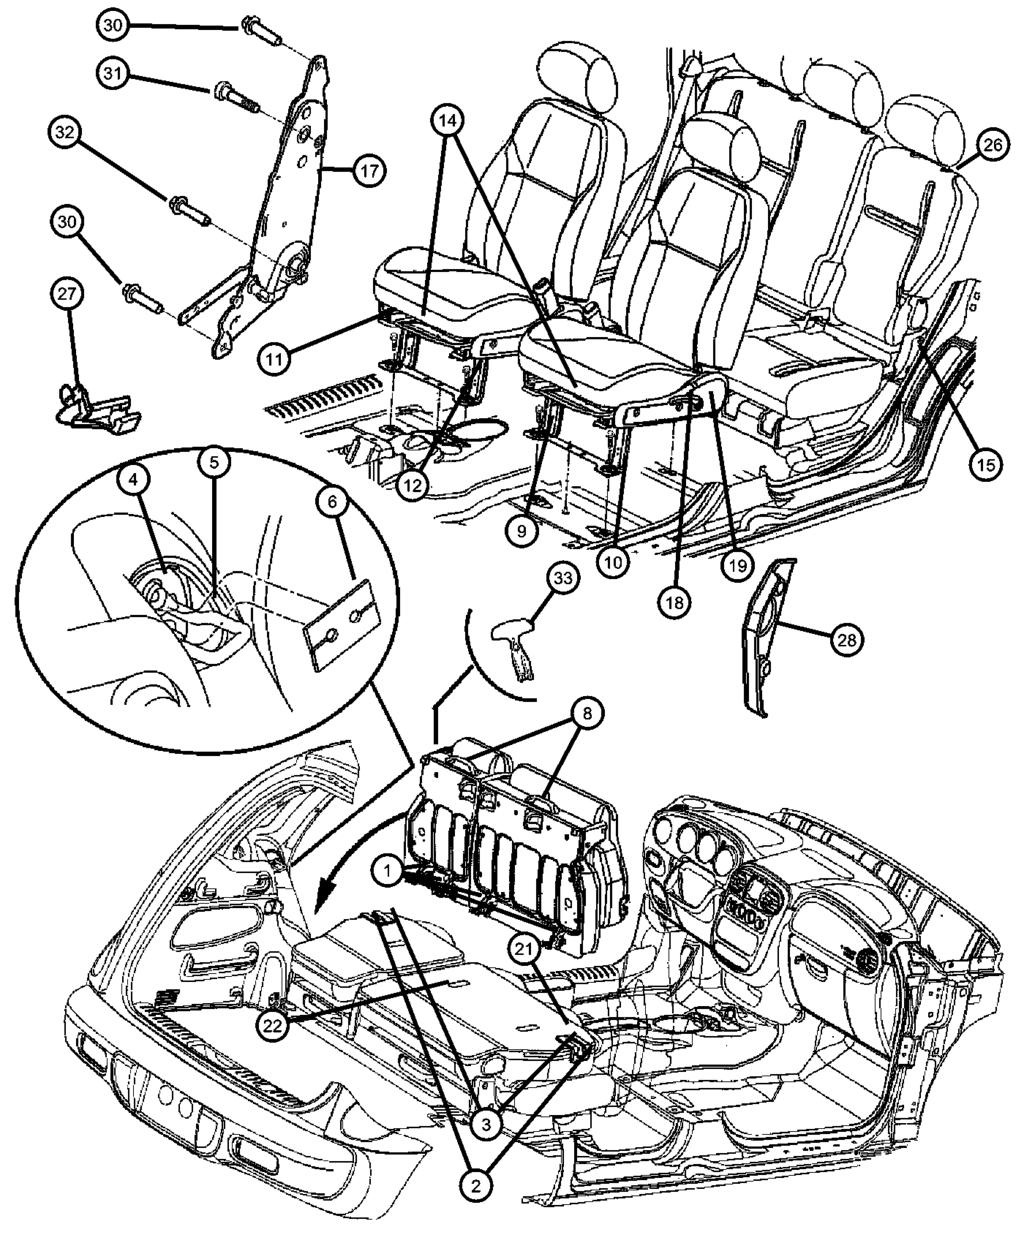 Recliners and Adjusters Figure IPT-810 1 *DL Front Seat Tracks, Right & Left 26 BEZEL, Seat Release 05019978AA 1 *R7 1 *R7 Export 1 *GL Export 1 *GL 1 *DL 27 CLIP, Cable 05080999AA 1 *R7 1 *GL 1 *DL